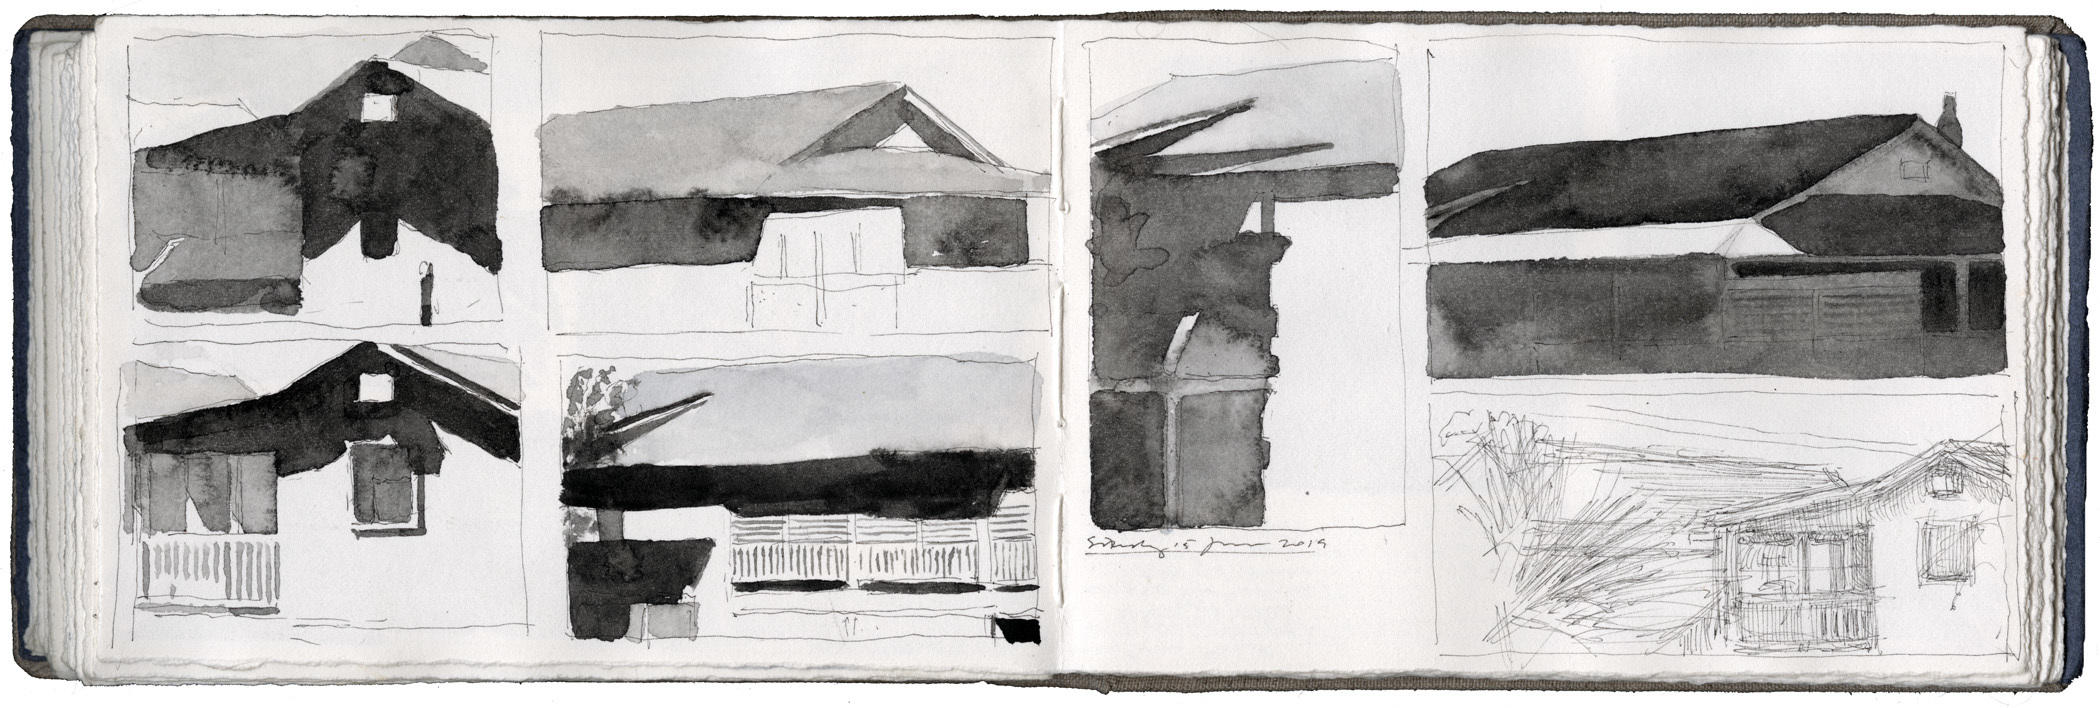 Studies of Beach House Shadows image